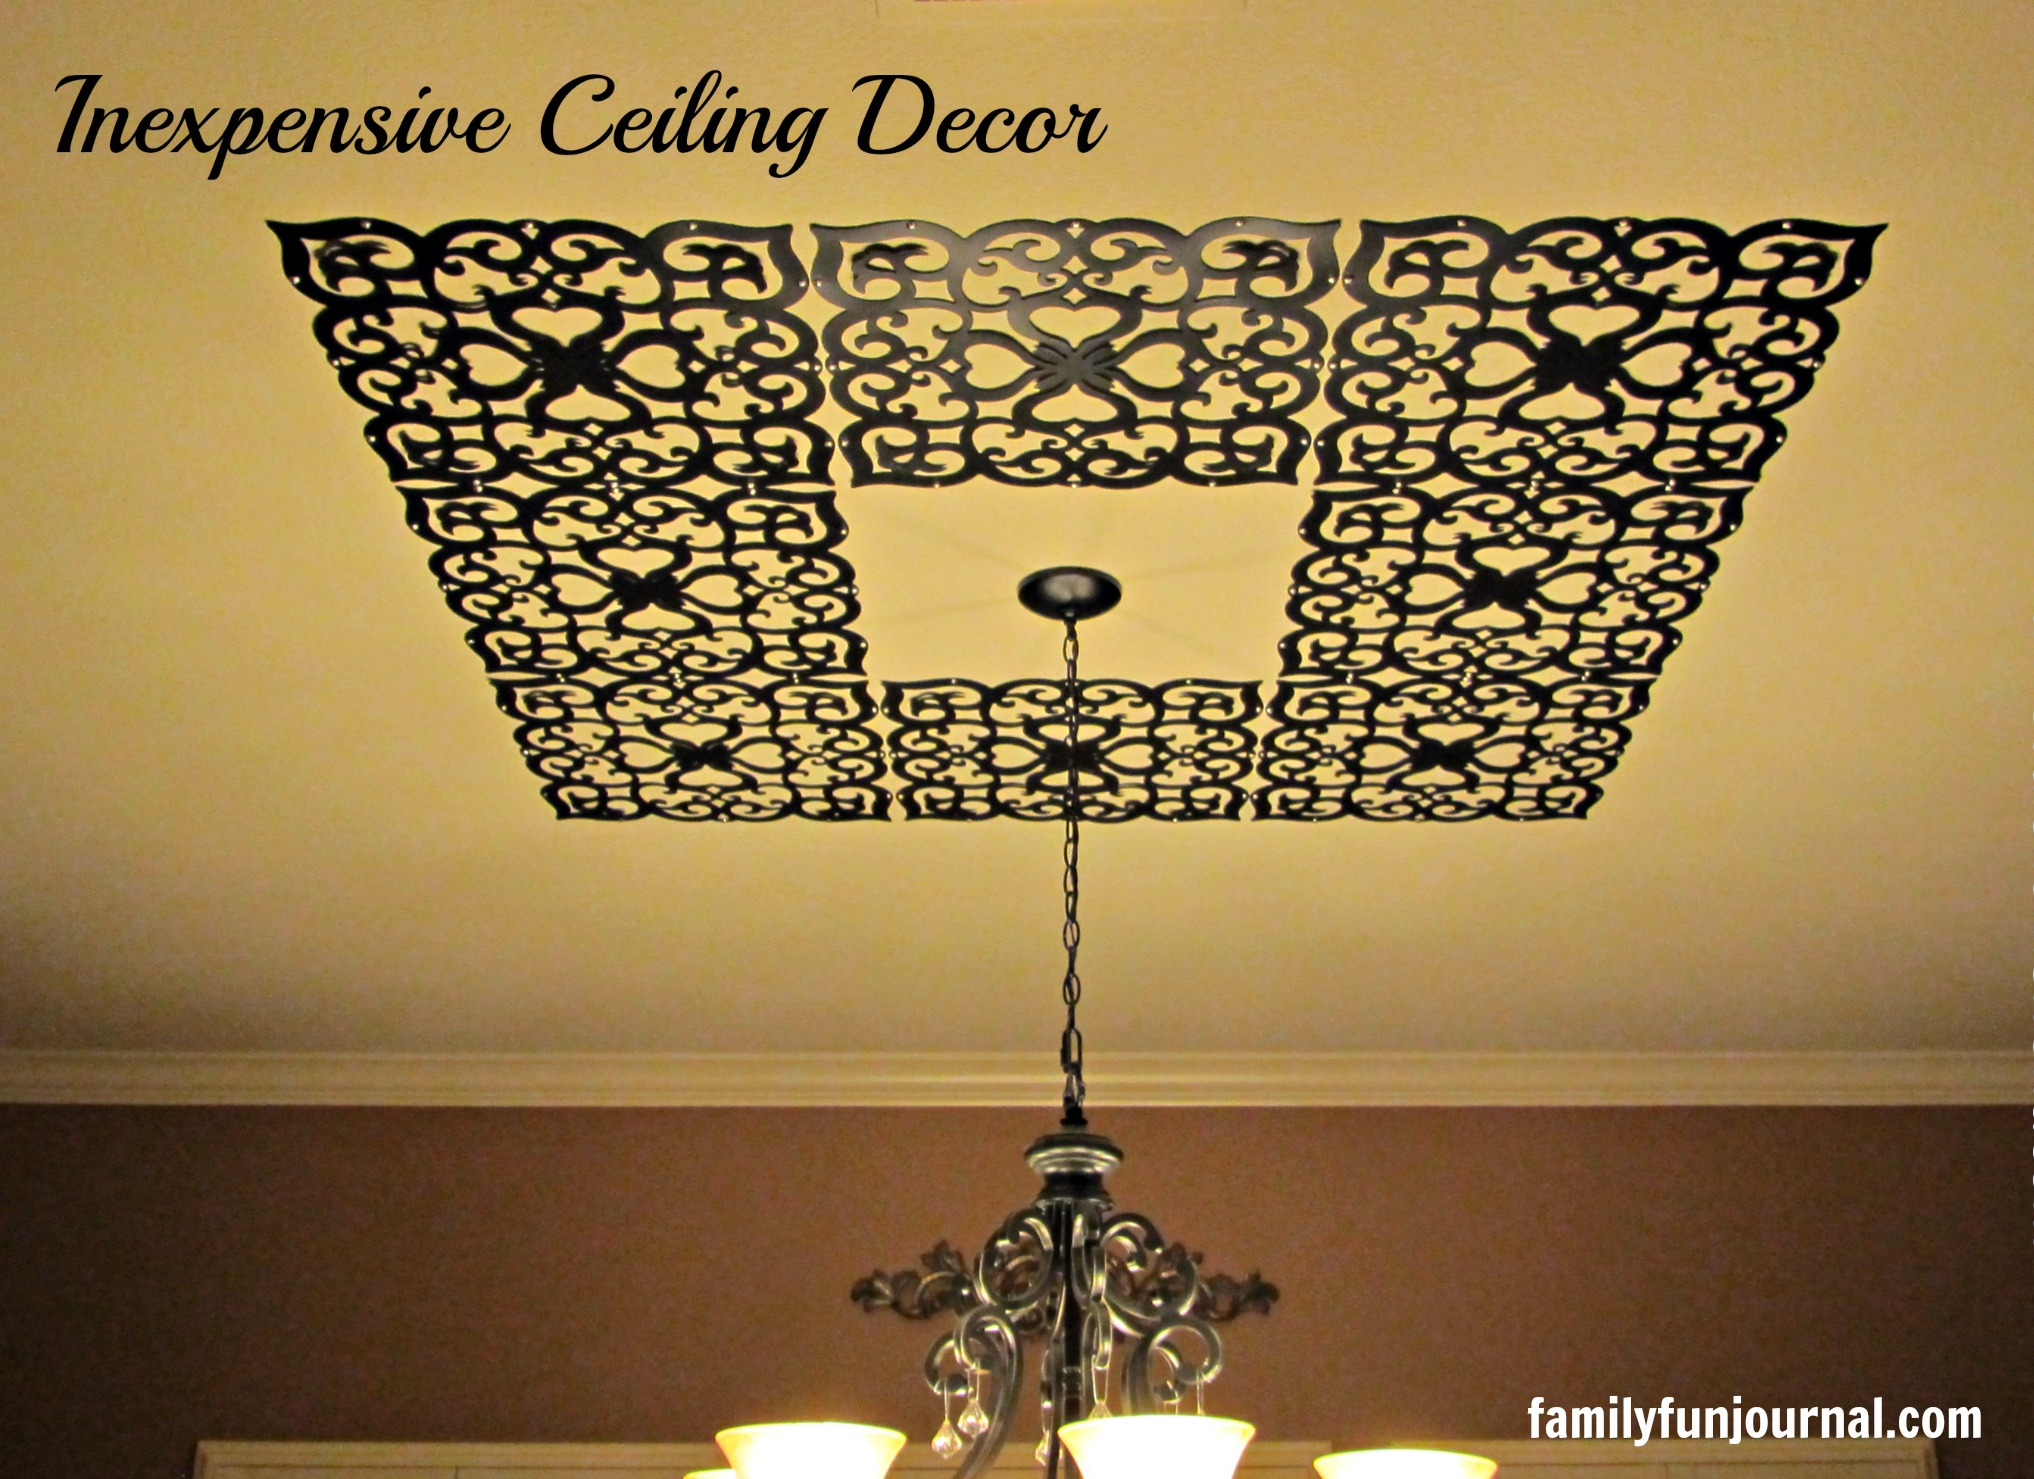 Container Store Ceiling Decor - Family Fun Journal